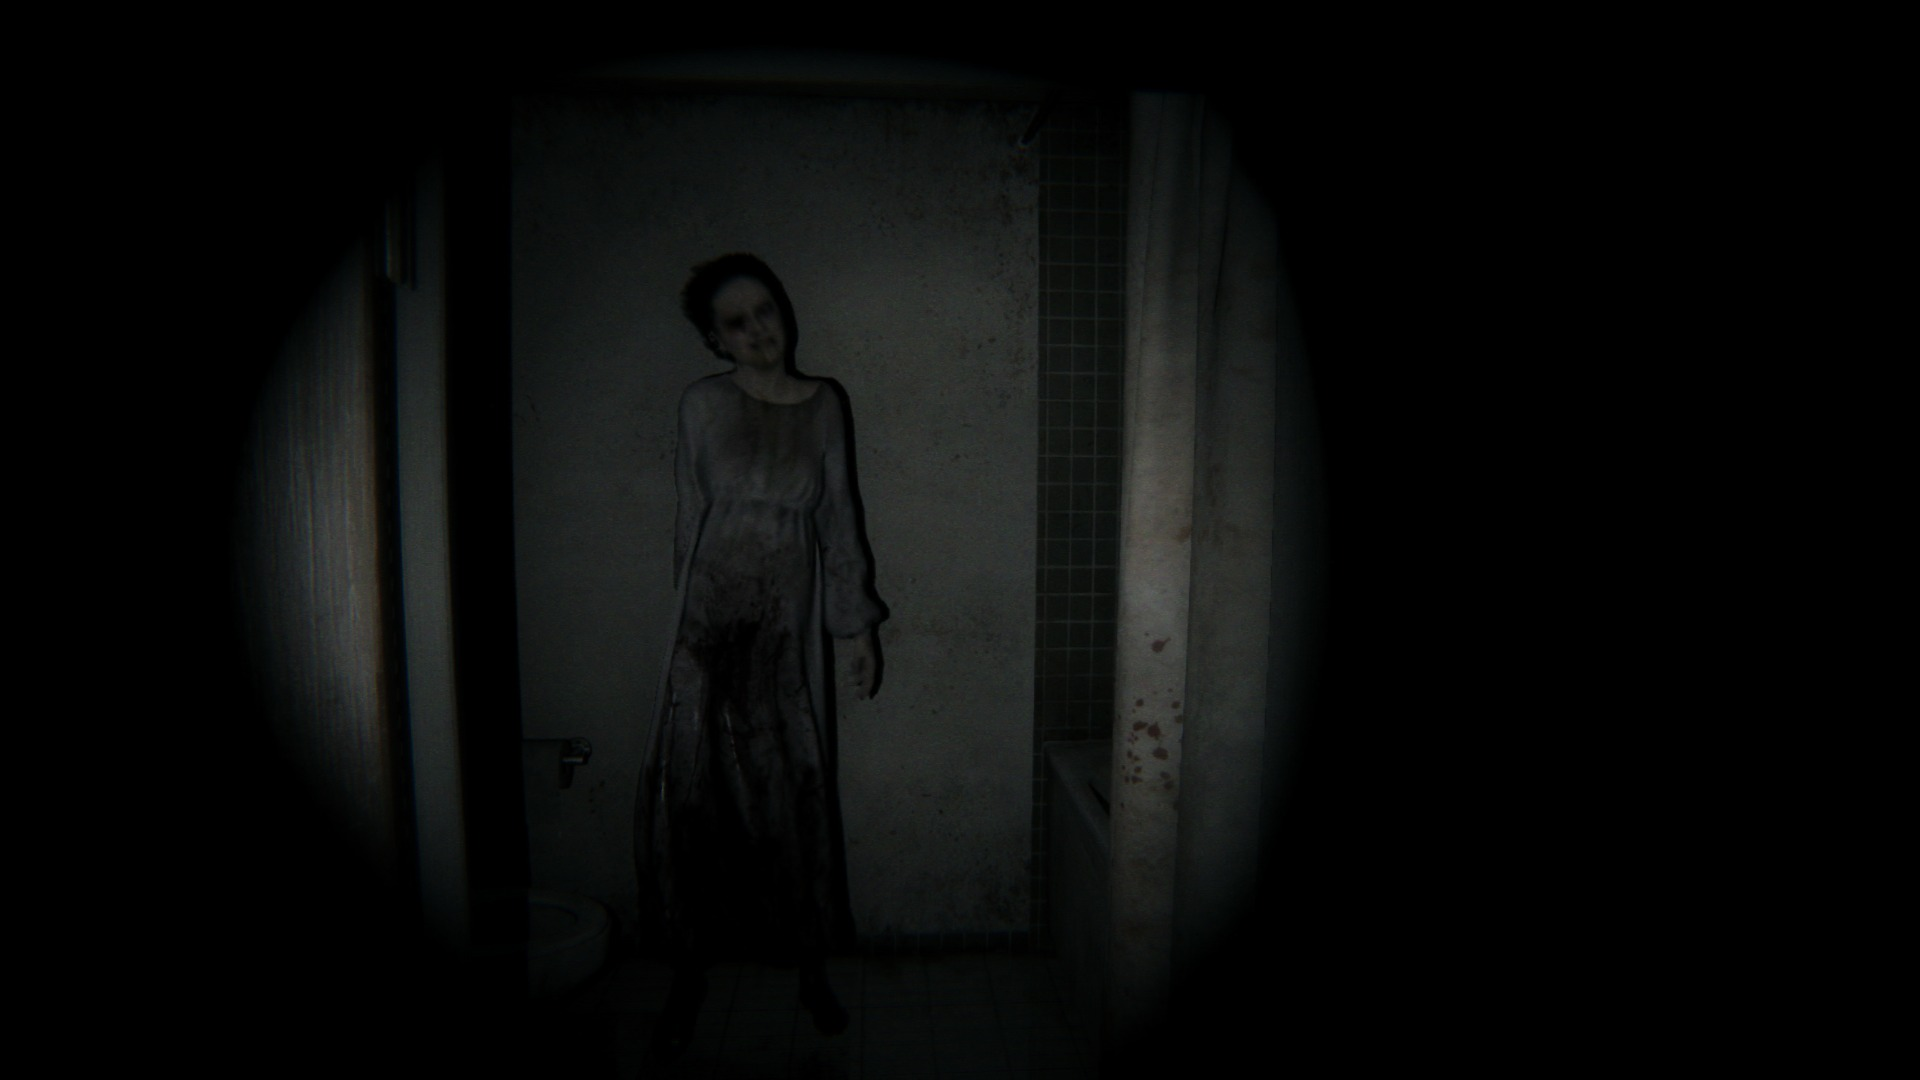 Resident Evil 7 made me miss the hell out of PT 1920x1080